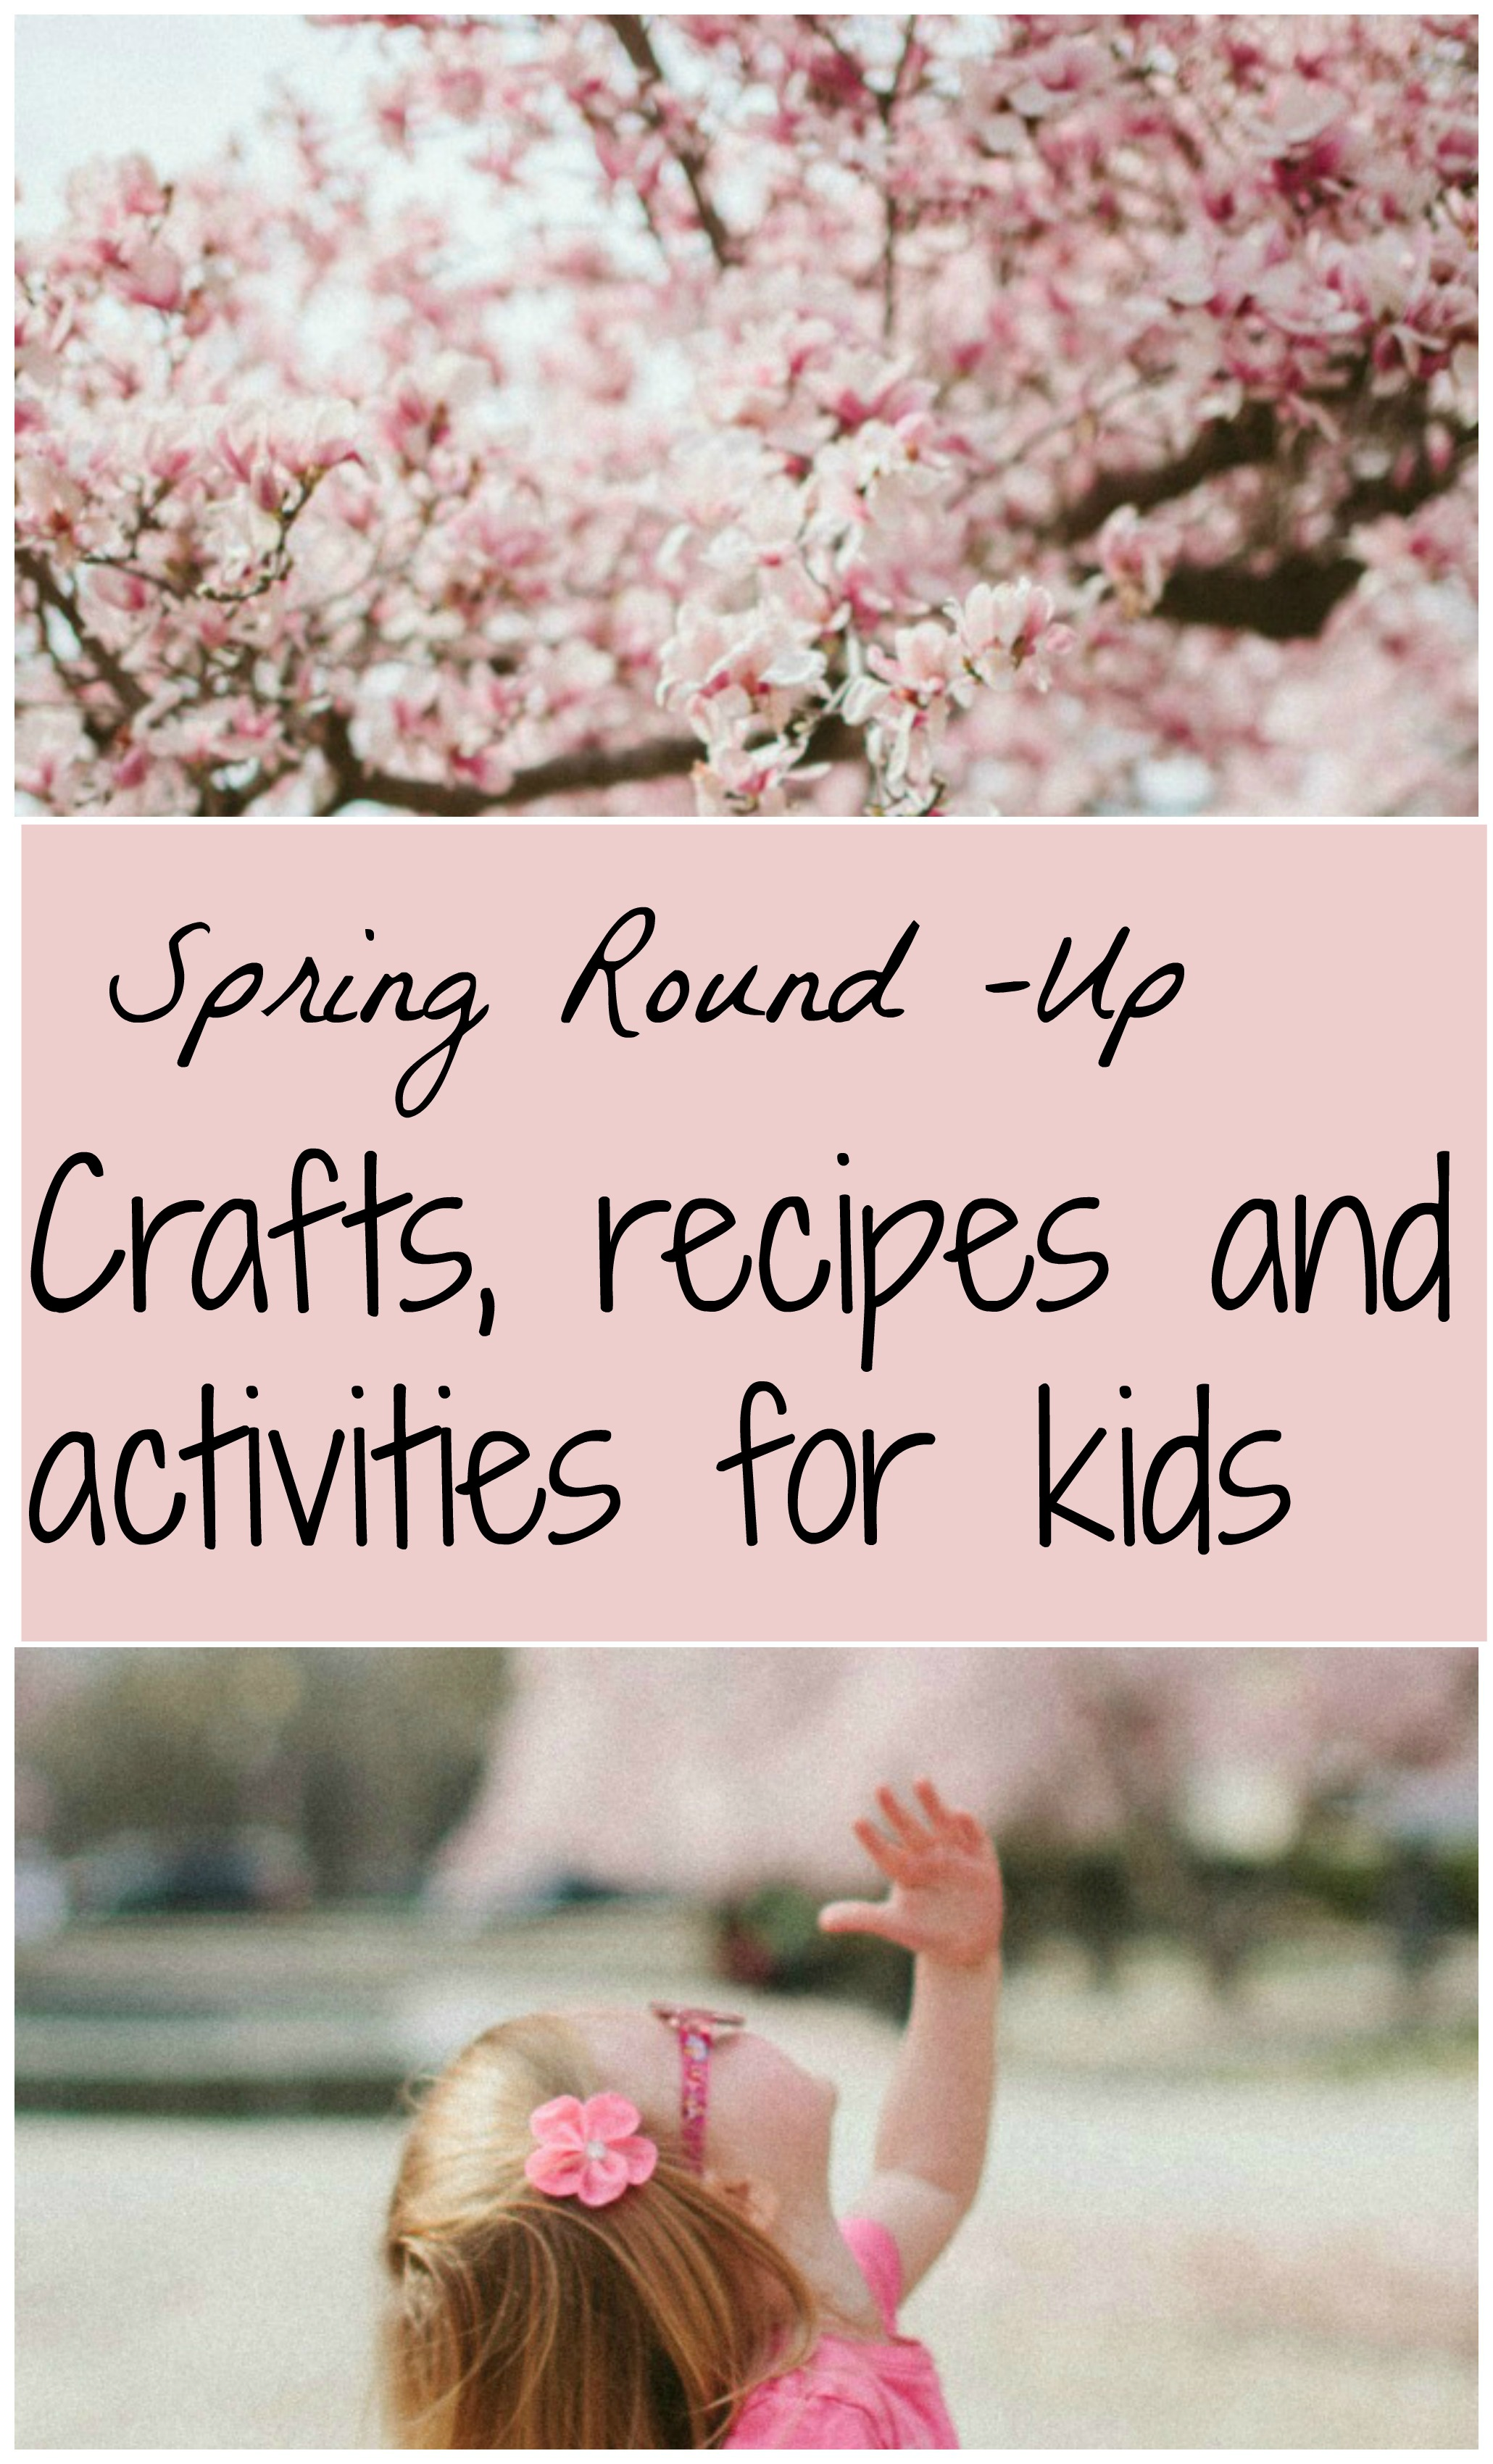 Spring Round-Up.Crafts, recipes and activities for kids